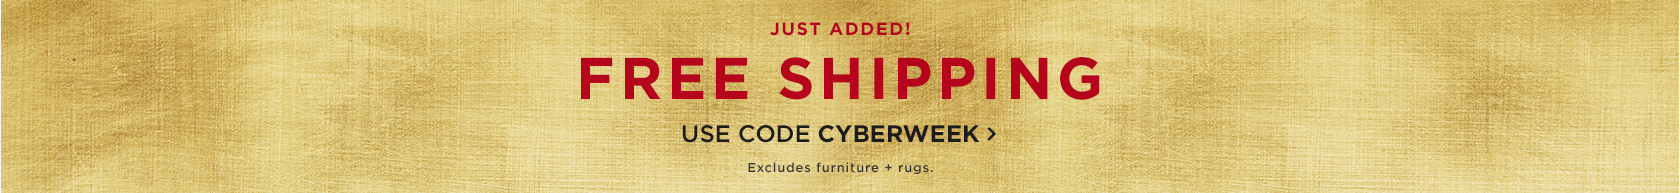 Just Added! Free Shipping. Use Code CYBERWEEK